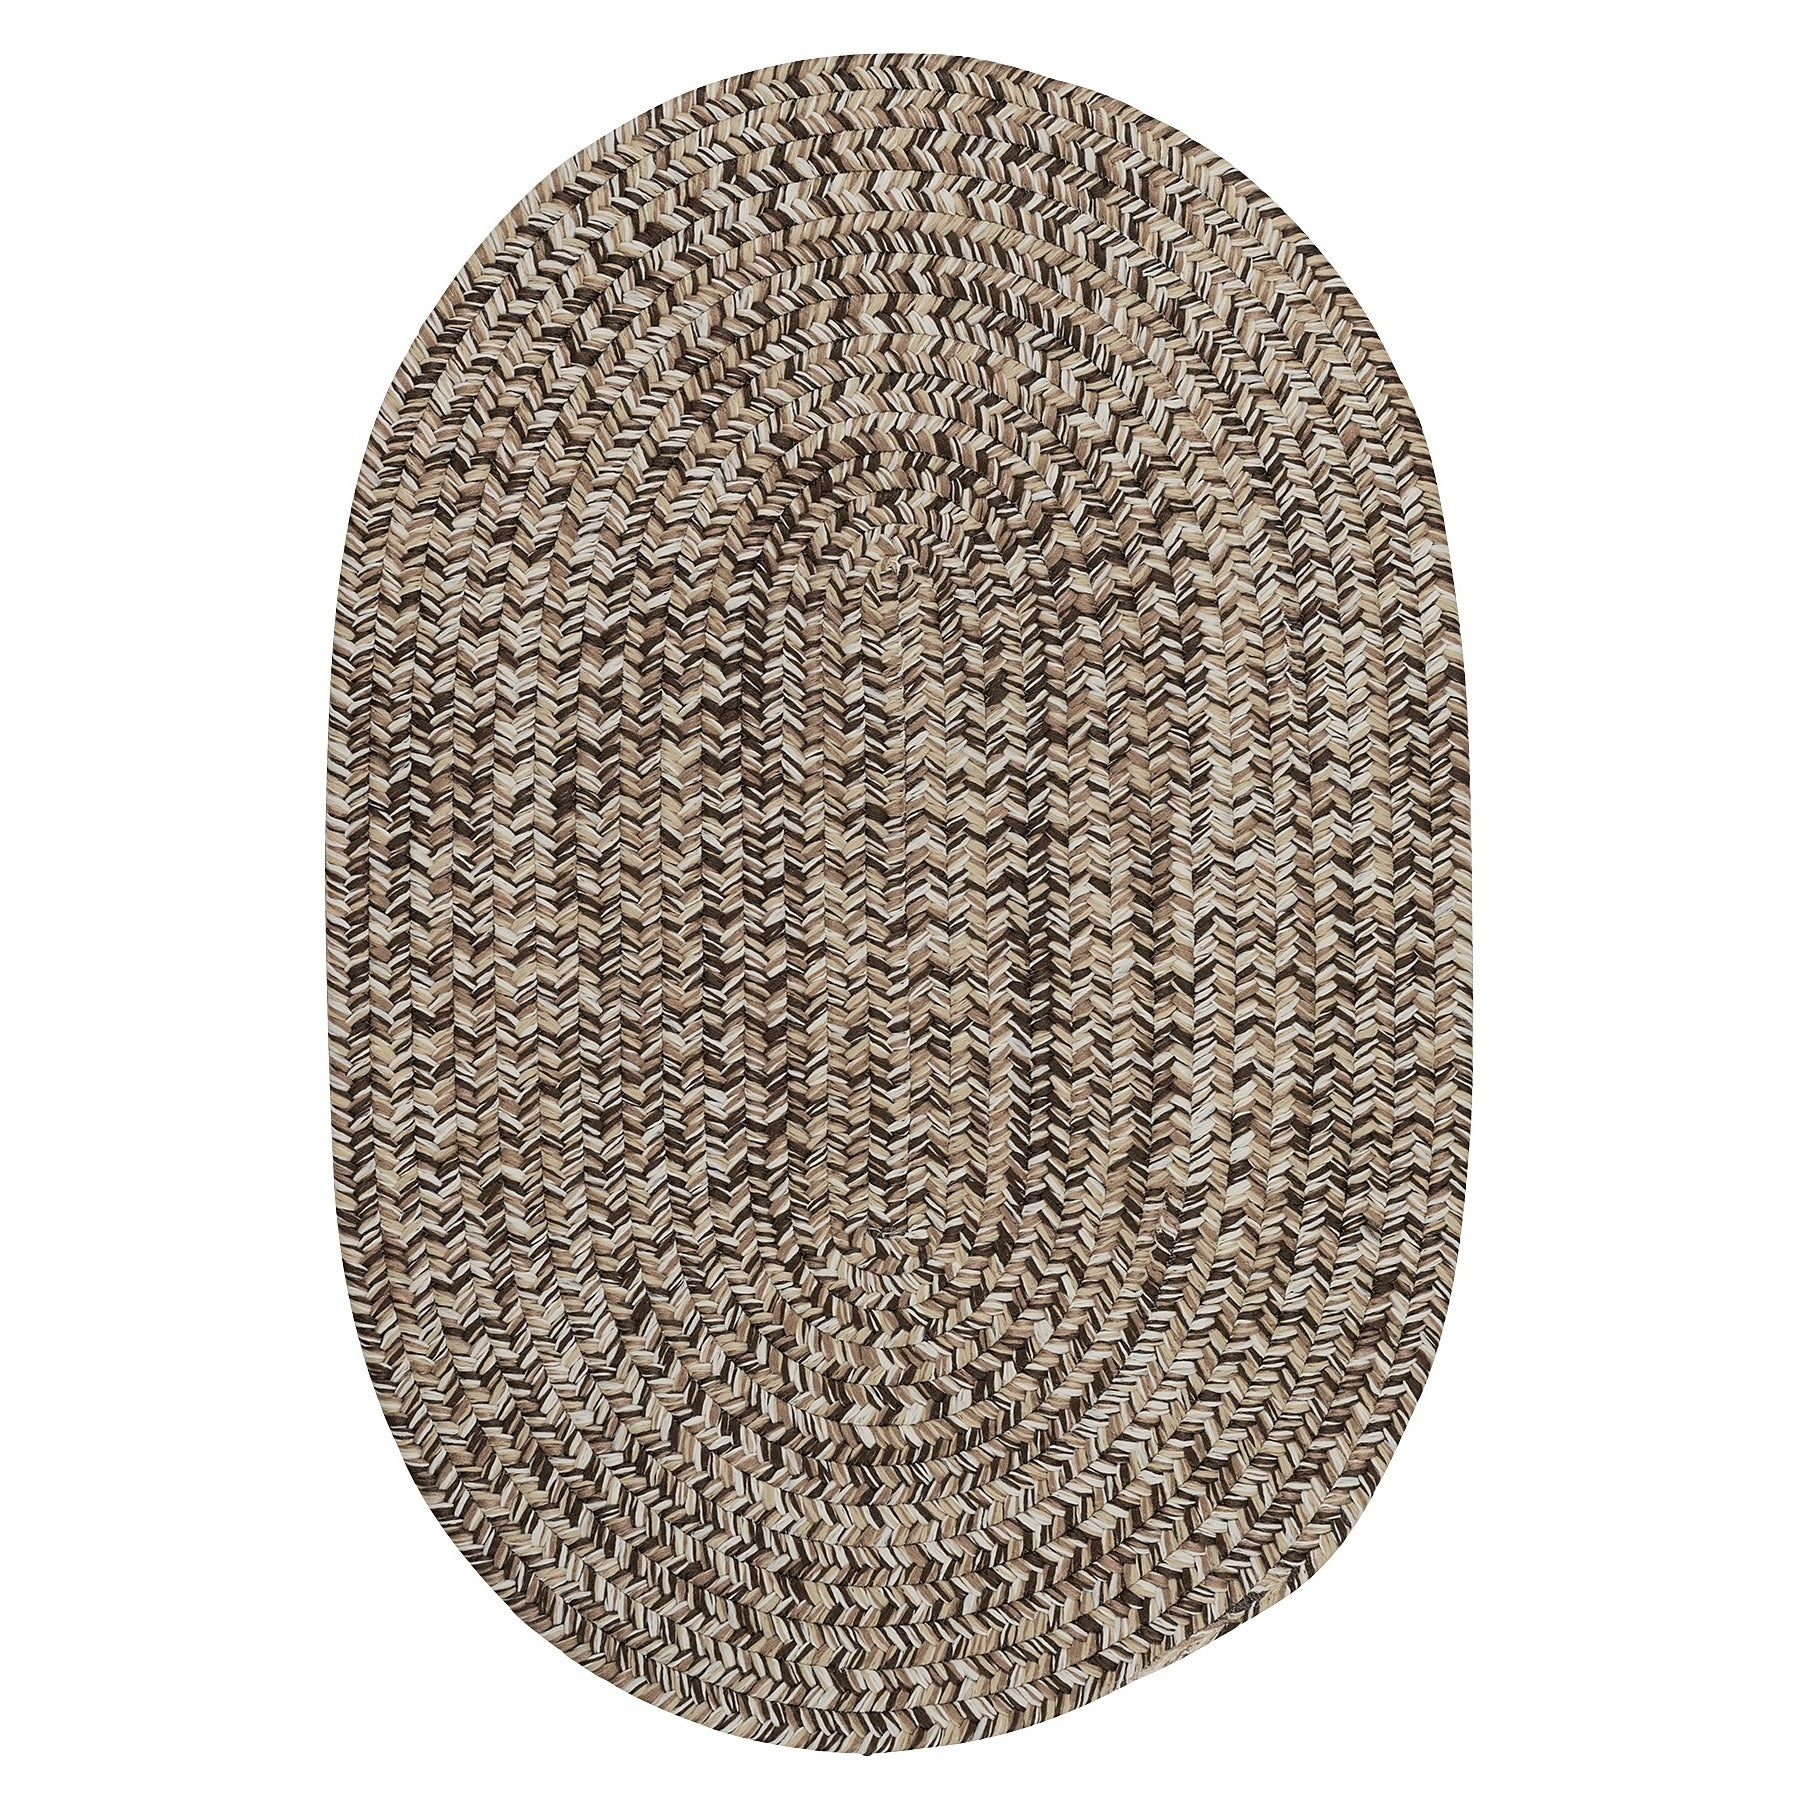 Farmstand Rustic Braided Tweed Oval Area Rug